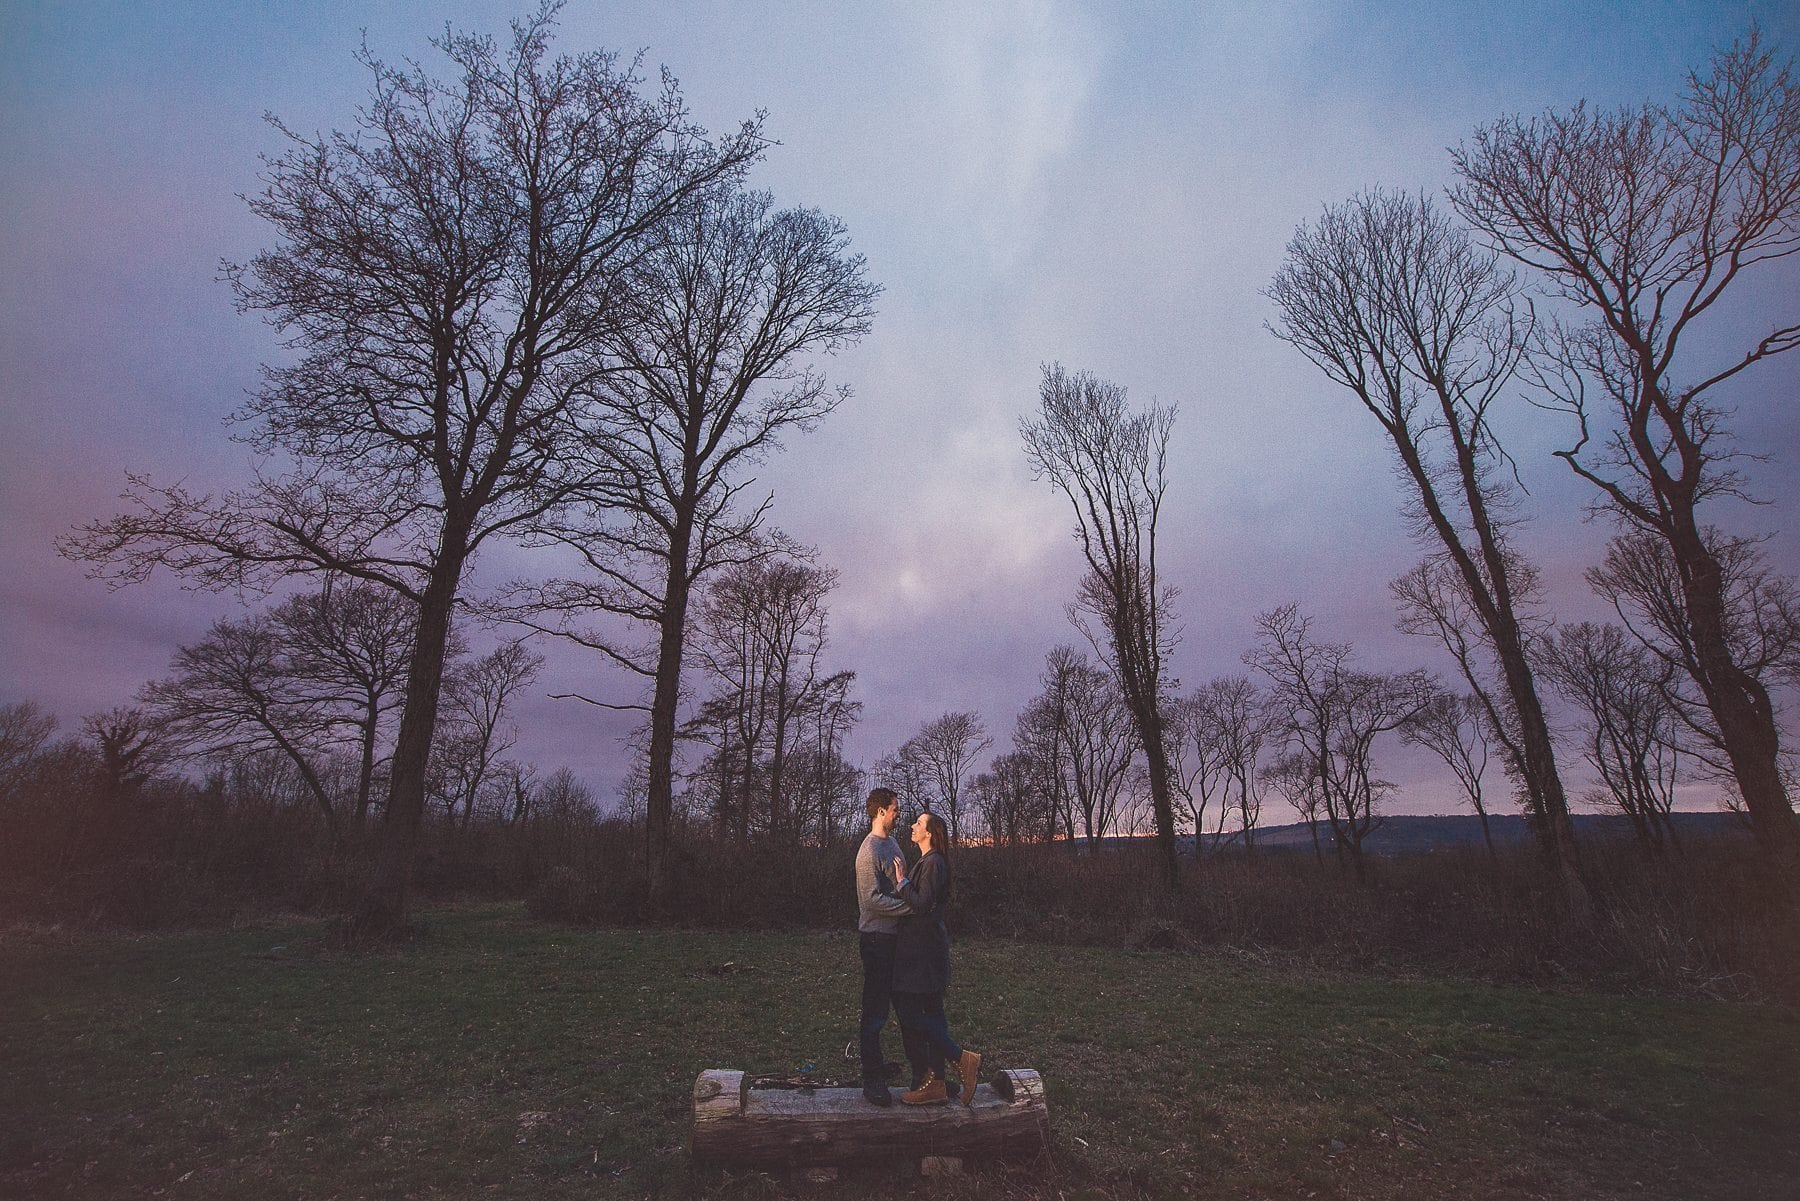 Kent Downs romantic relaxed engagement shoot at sunset